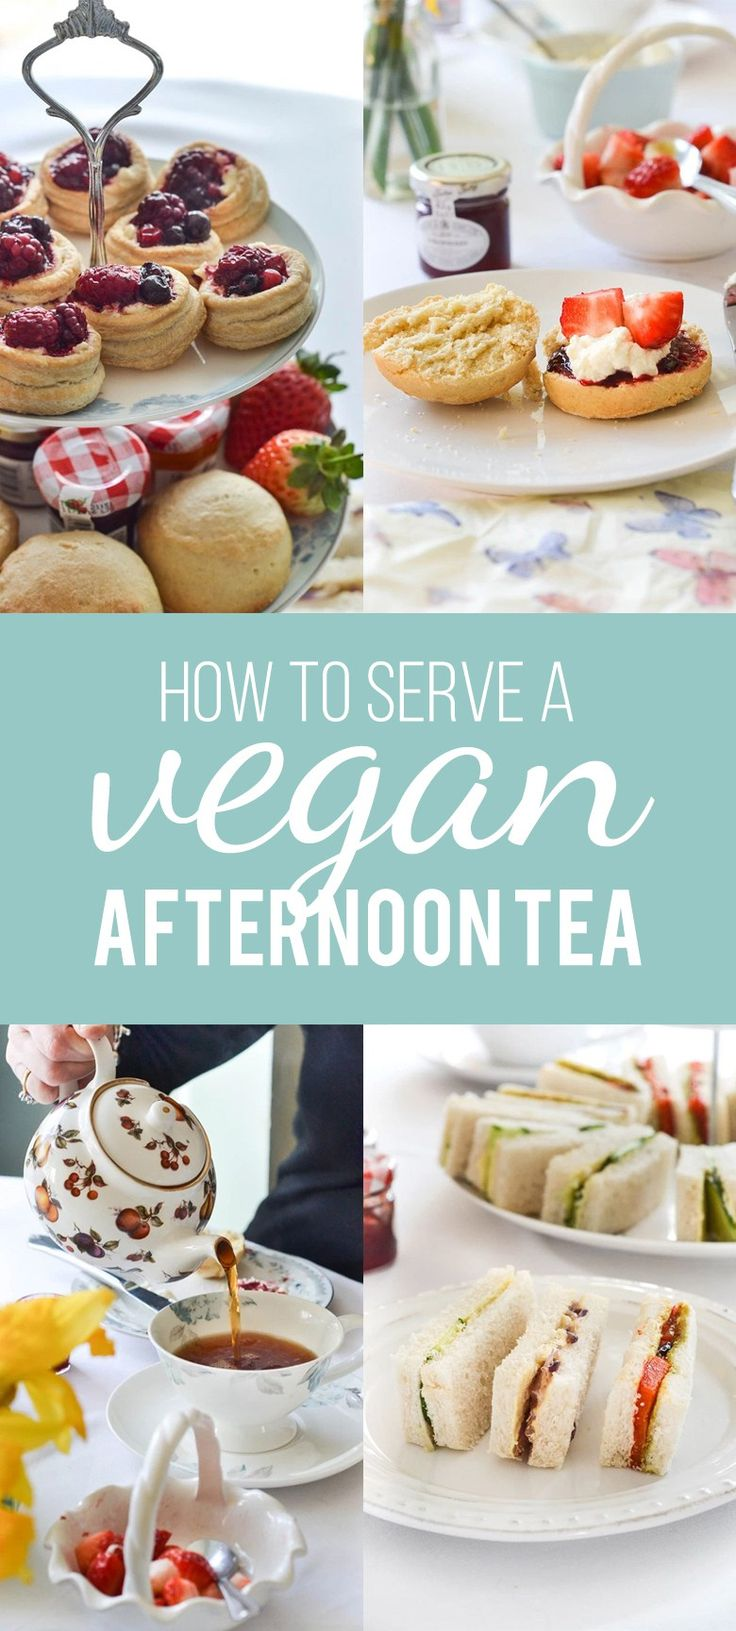 How To Serve A Vegan Afternoon Tea with recipes!